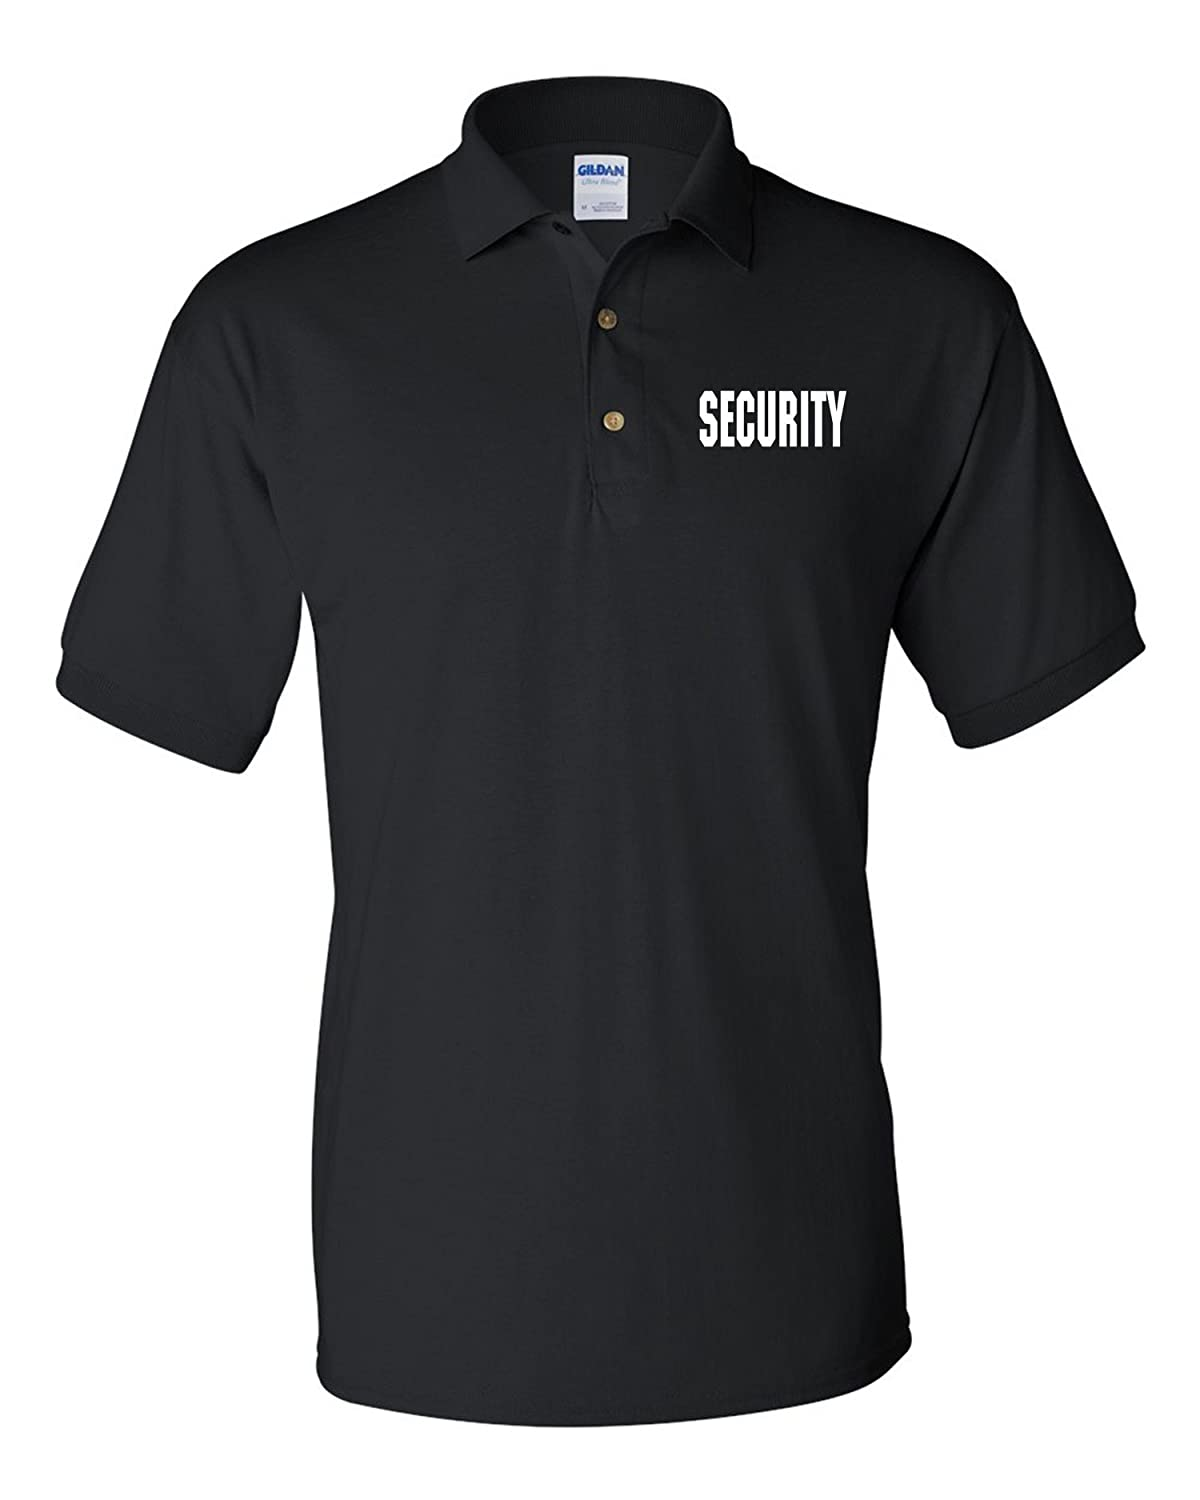 1588d370 Gildan Peerless Embroidery Security Silkscreen Front & Back Black Sport Polo  at Amazon Men's Clothing store: